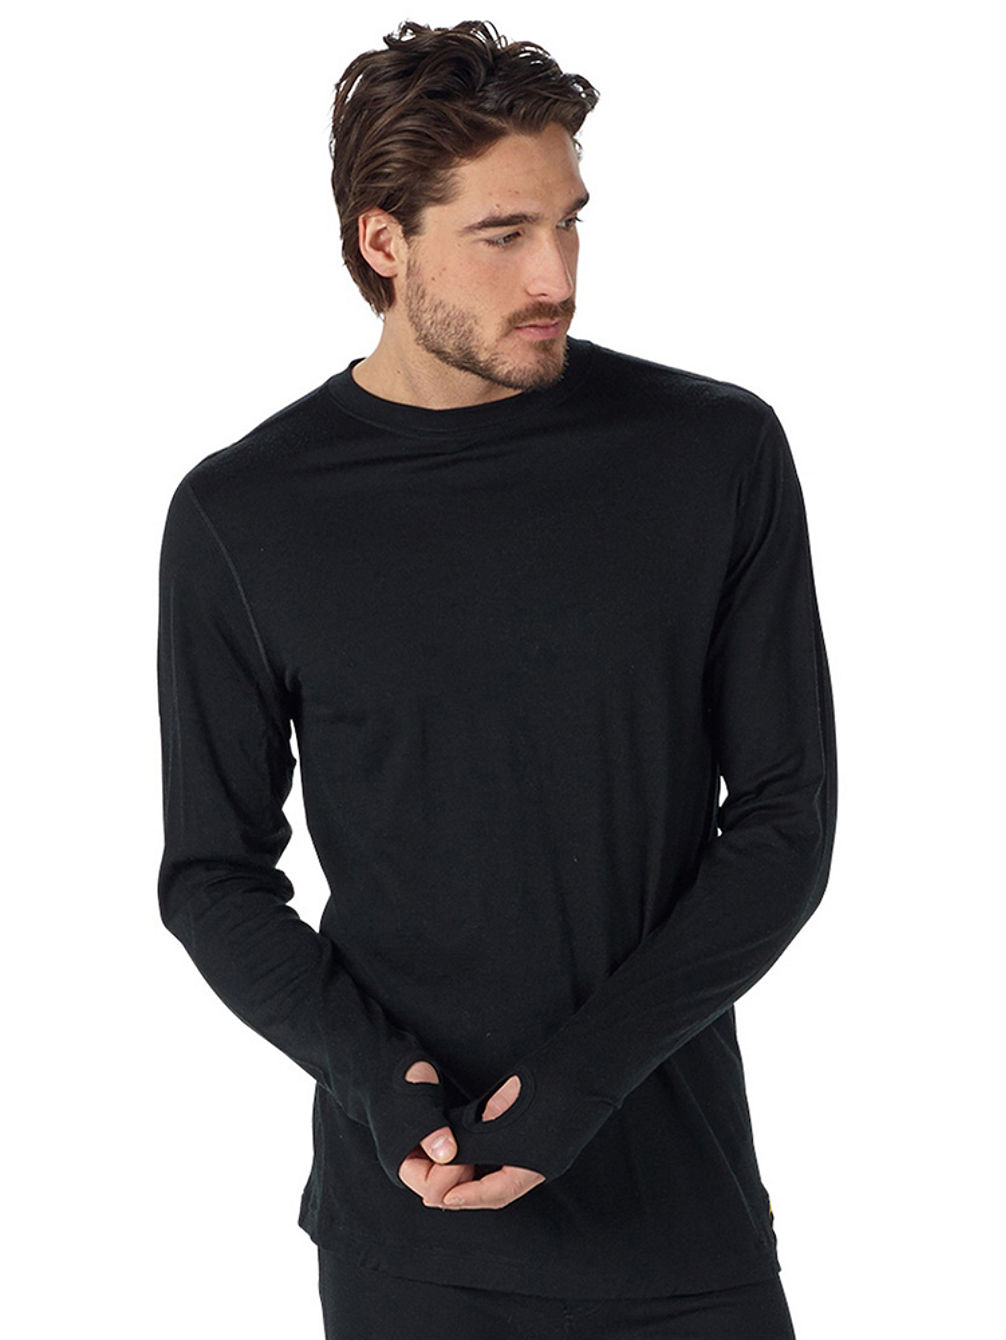 Midweight Merino Button Up Tech Shirt LS